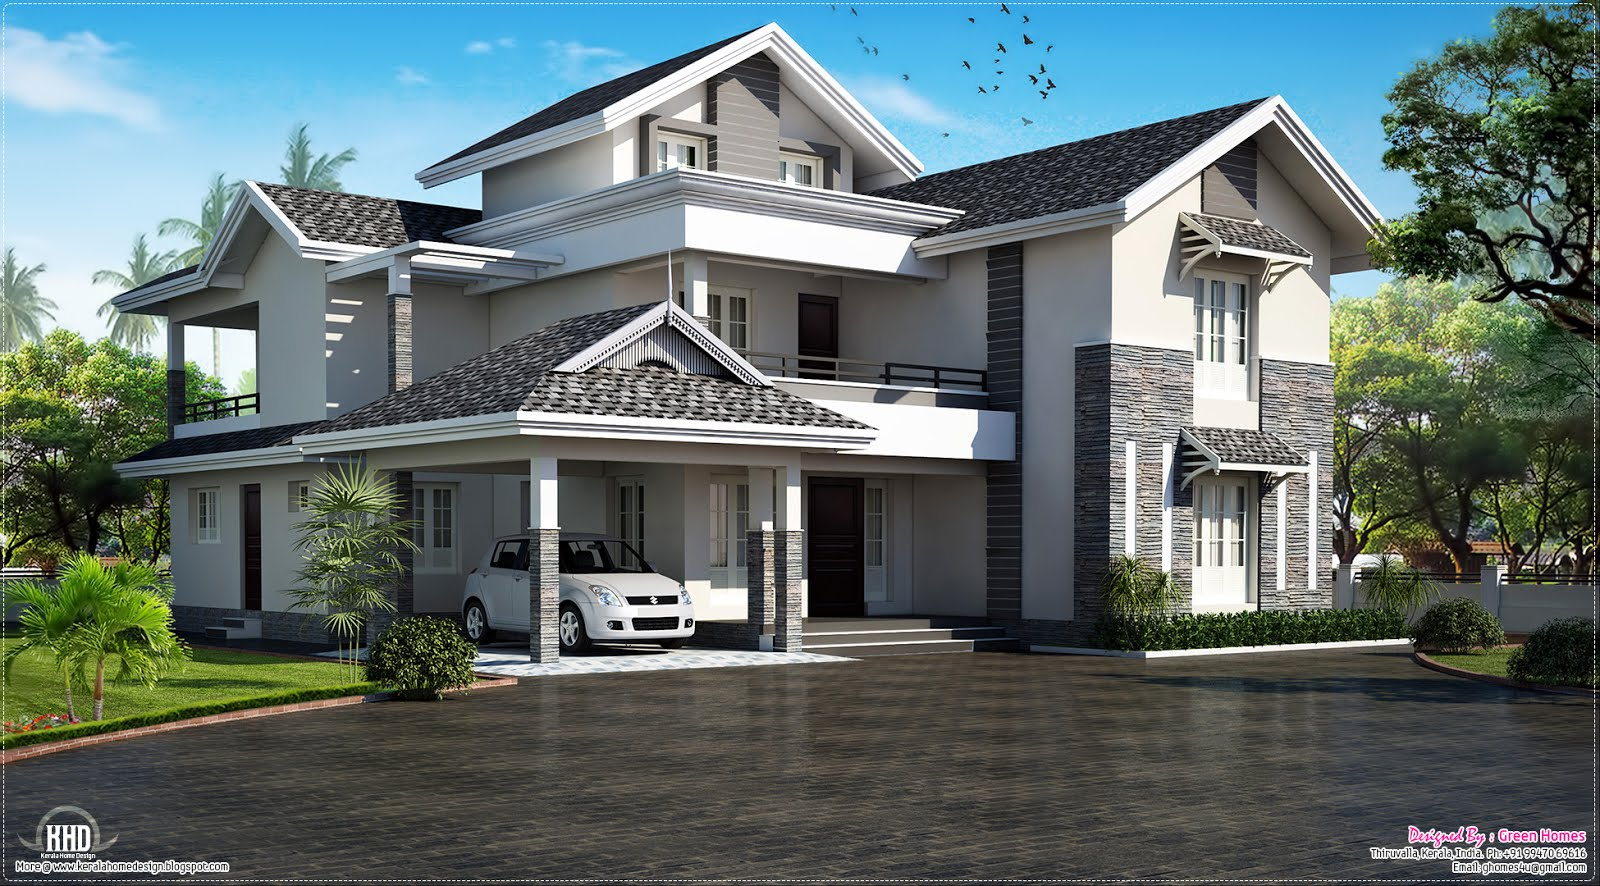 eco friendly houses: Modern sloping roof house villa design